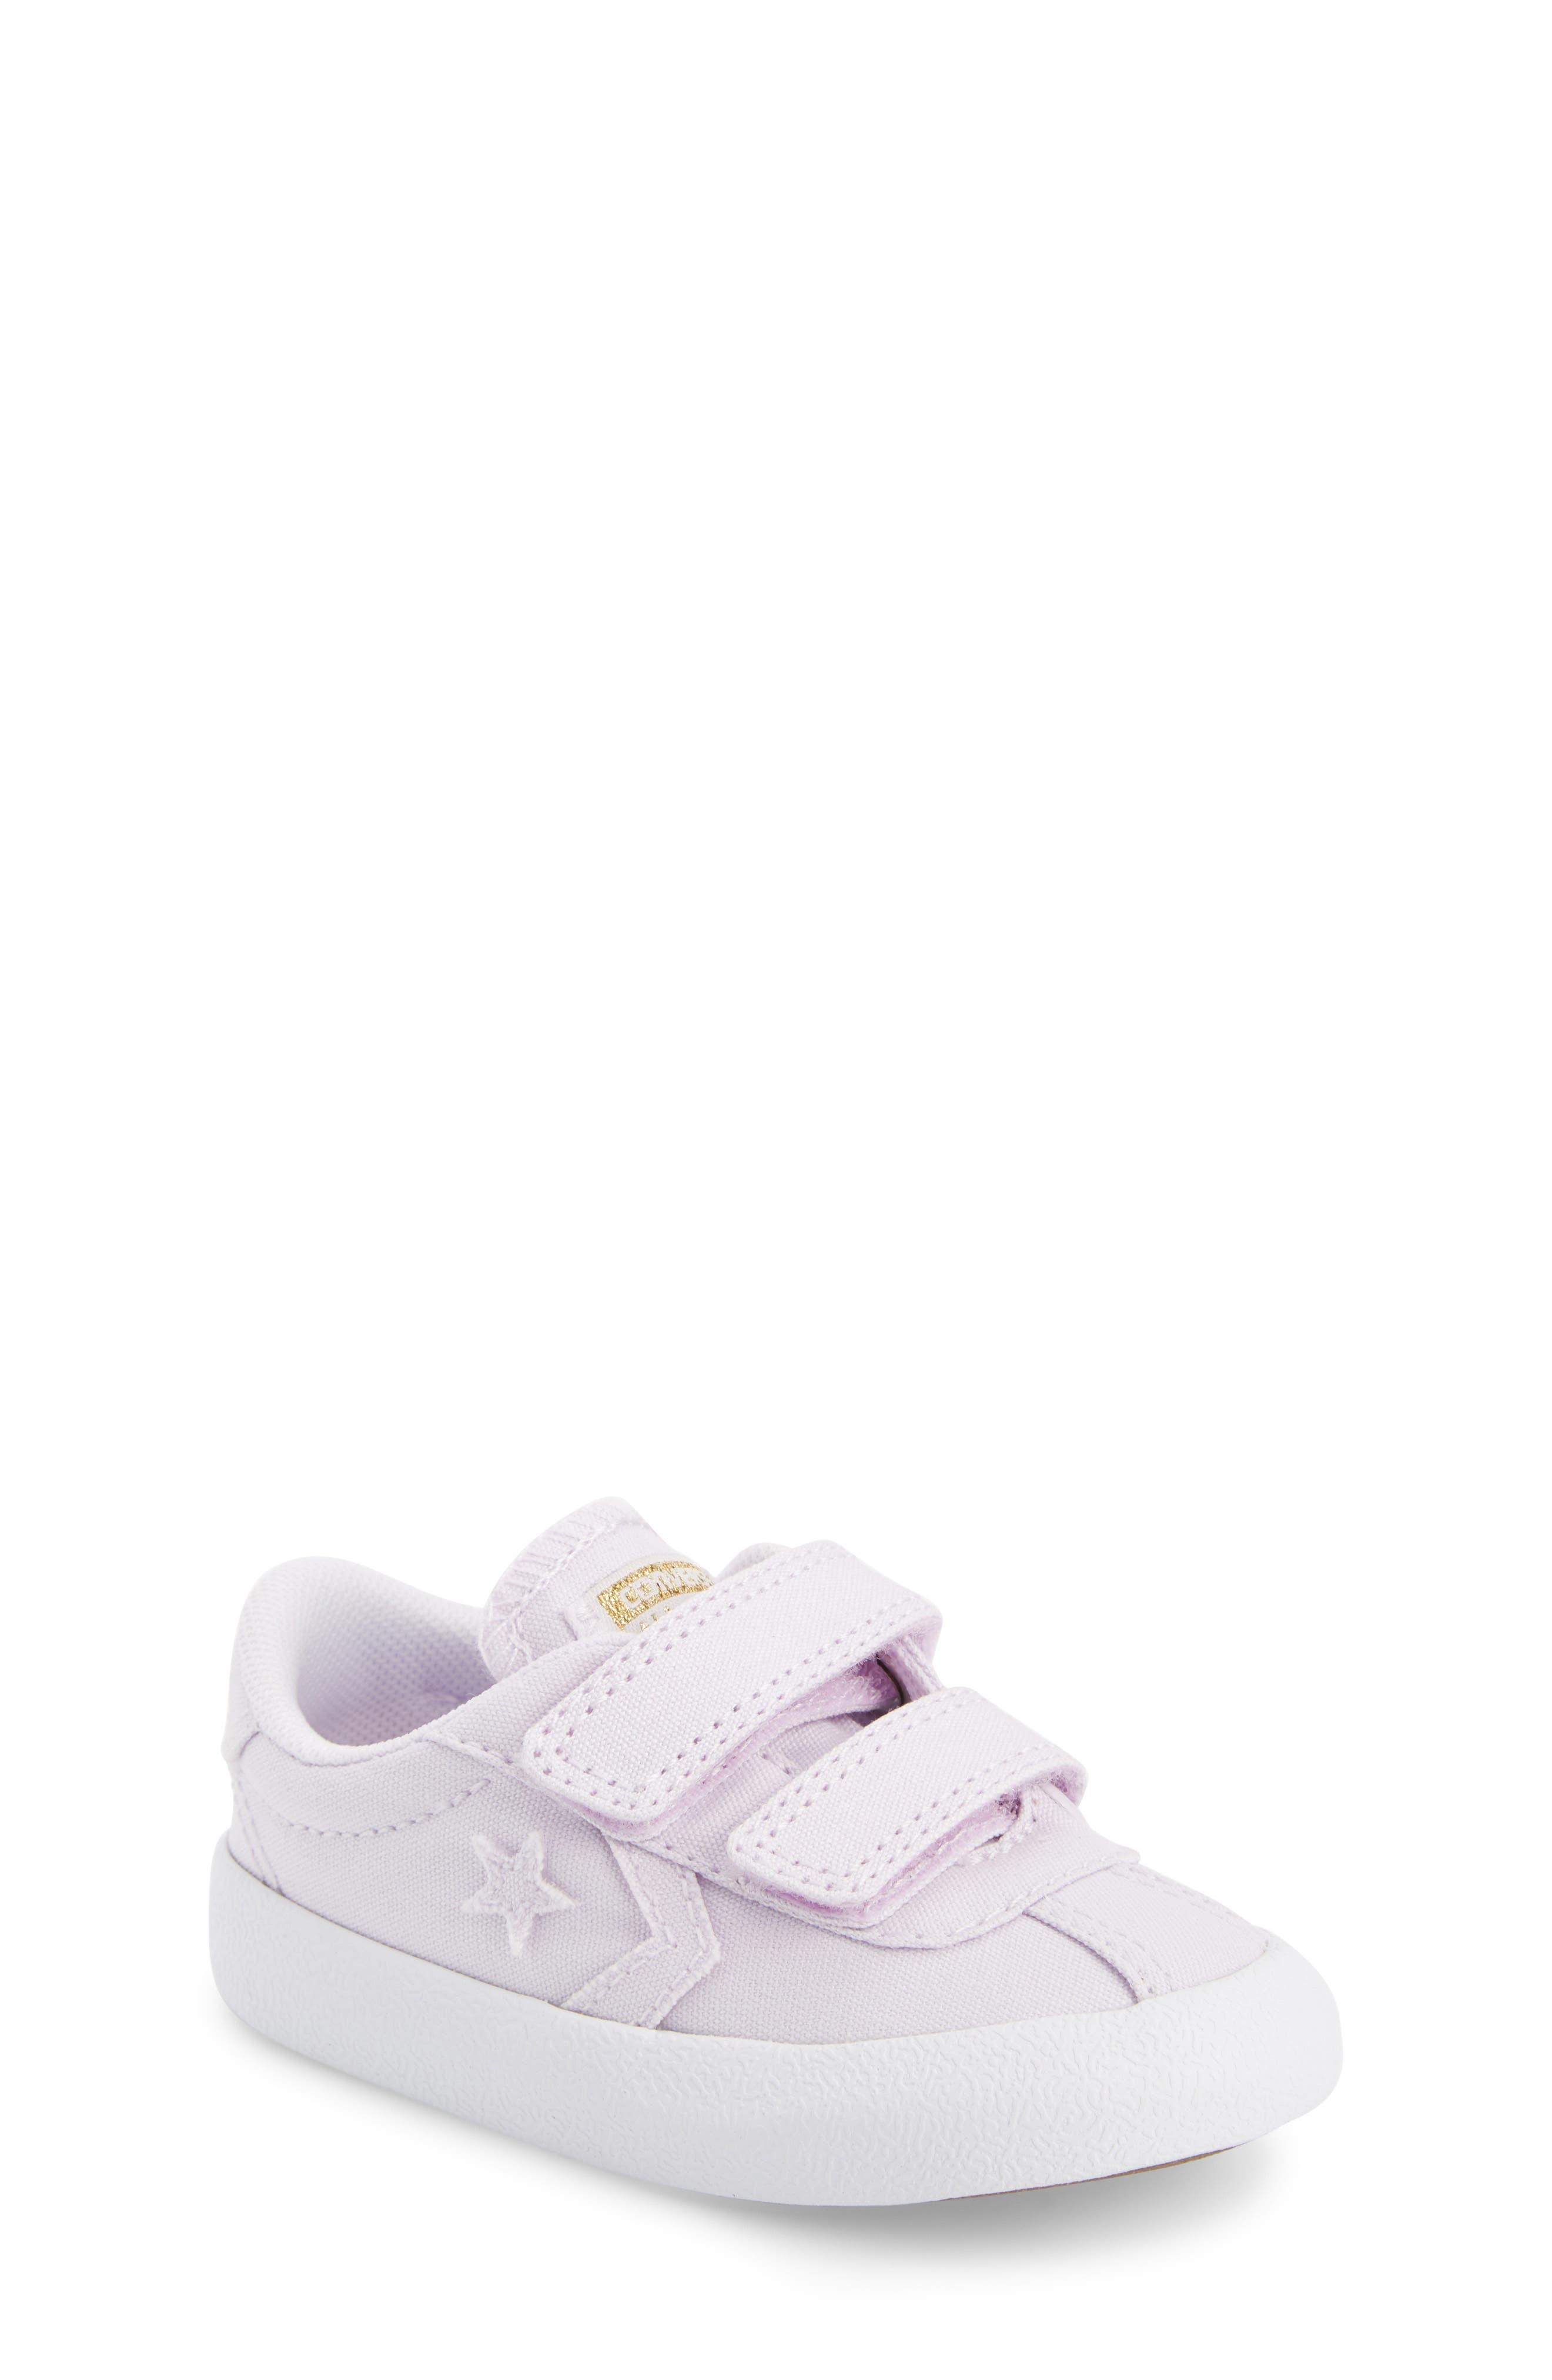 Converse Breakpoint Sneaker (Baby, Walker & Toddler)